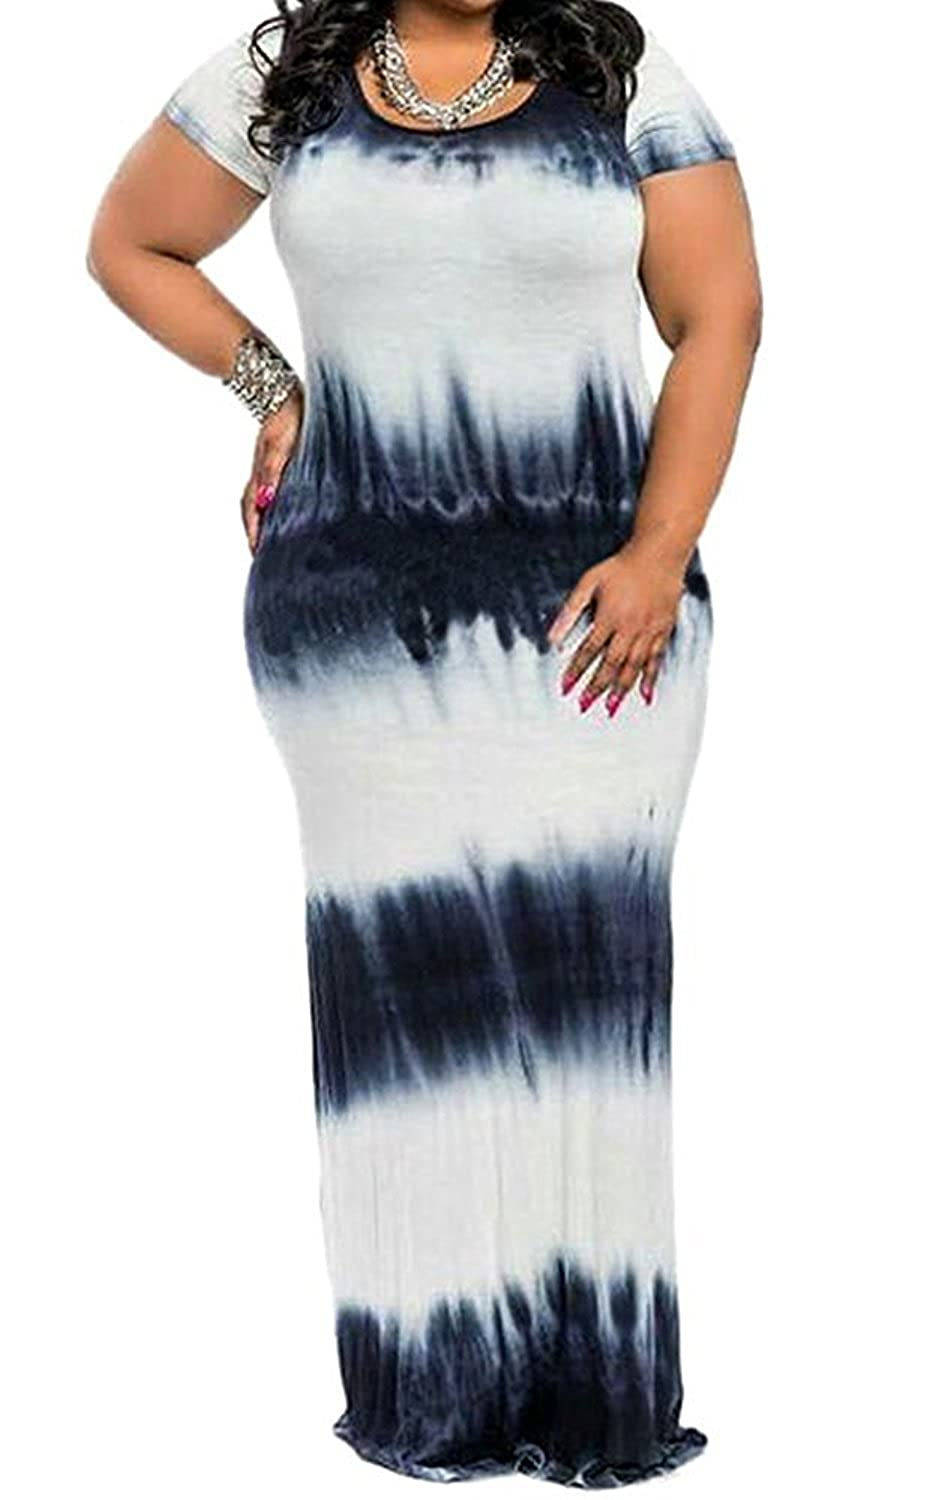 1e712a6a708 Fabric:Super Milk Silk+Spandex,wearlove don't authorize britned,which have  bad products and don't have brand name. Tie-Dye Print,Plus Size,Stretch  Spandex ...